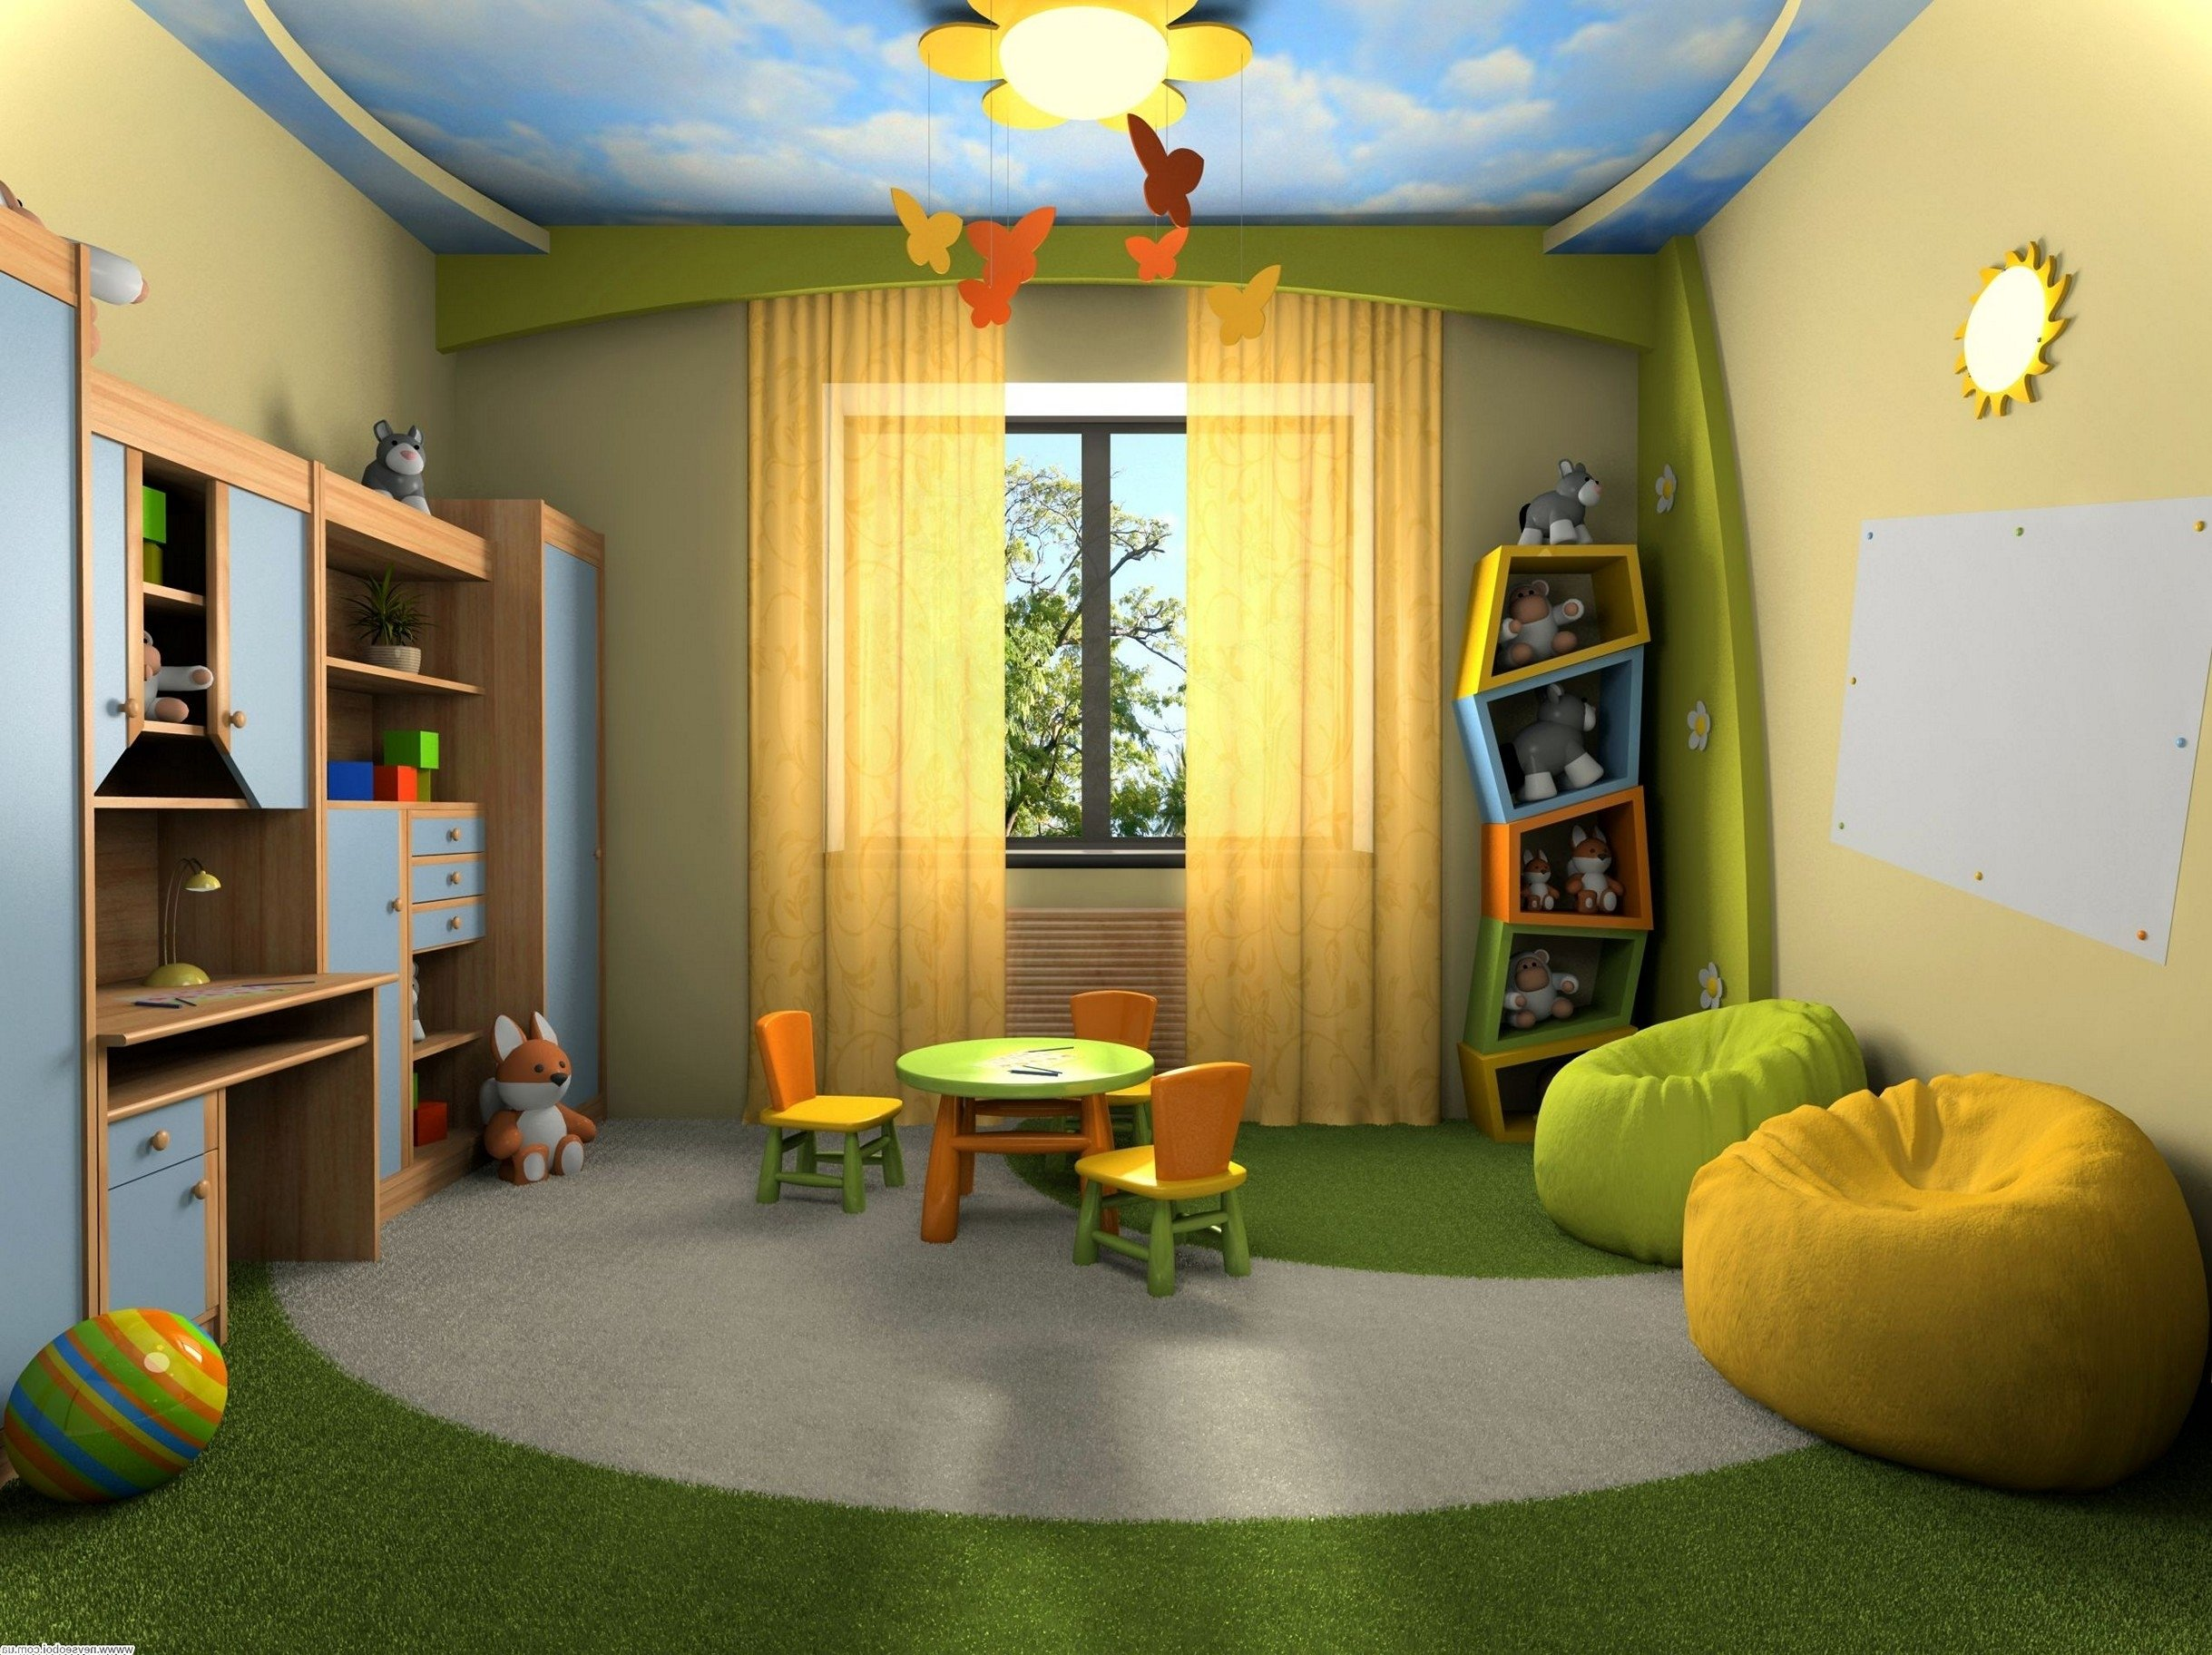 10 Nice Playroom Ideas For Small Spaces kids playroom ideas for small spaces 2020